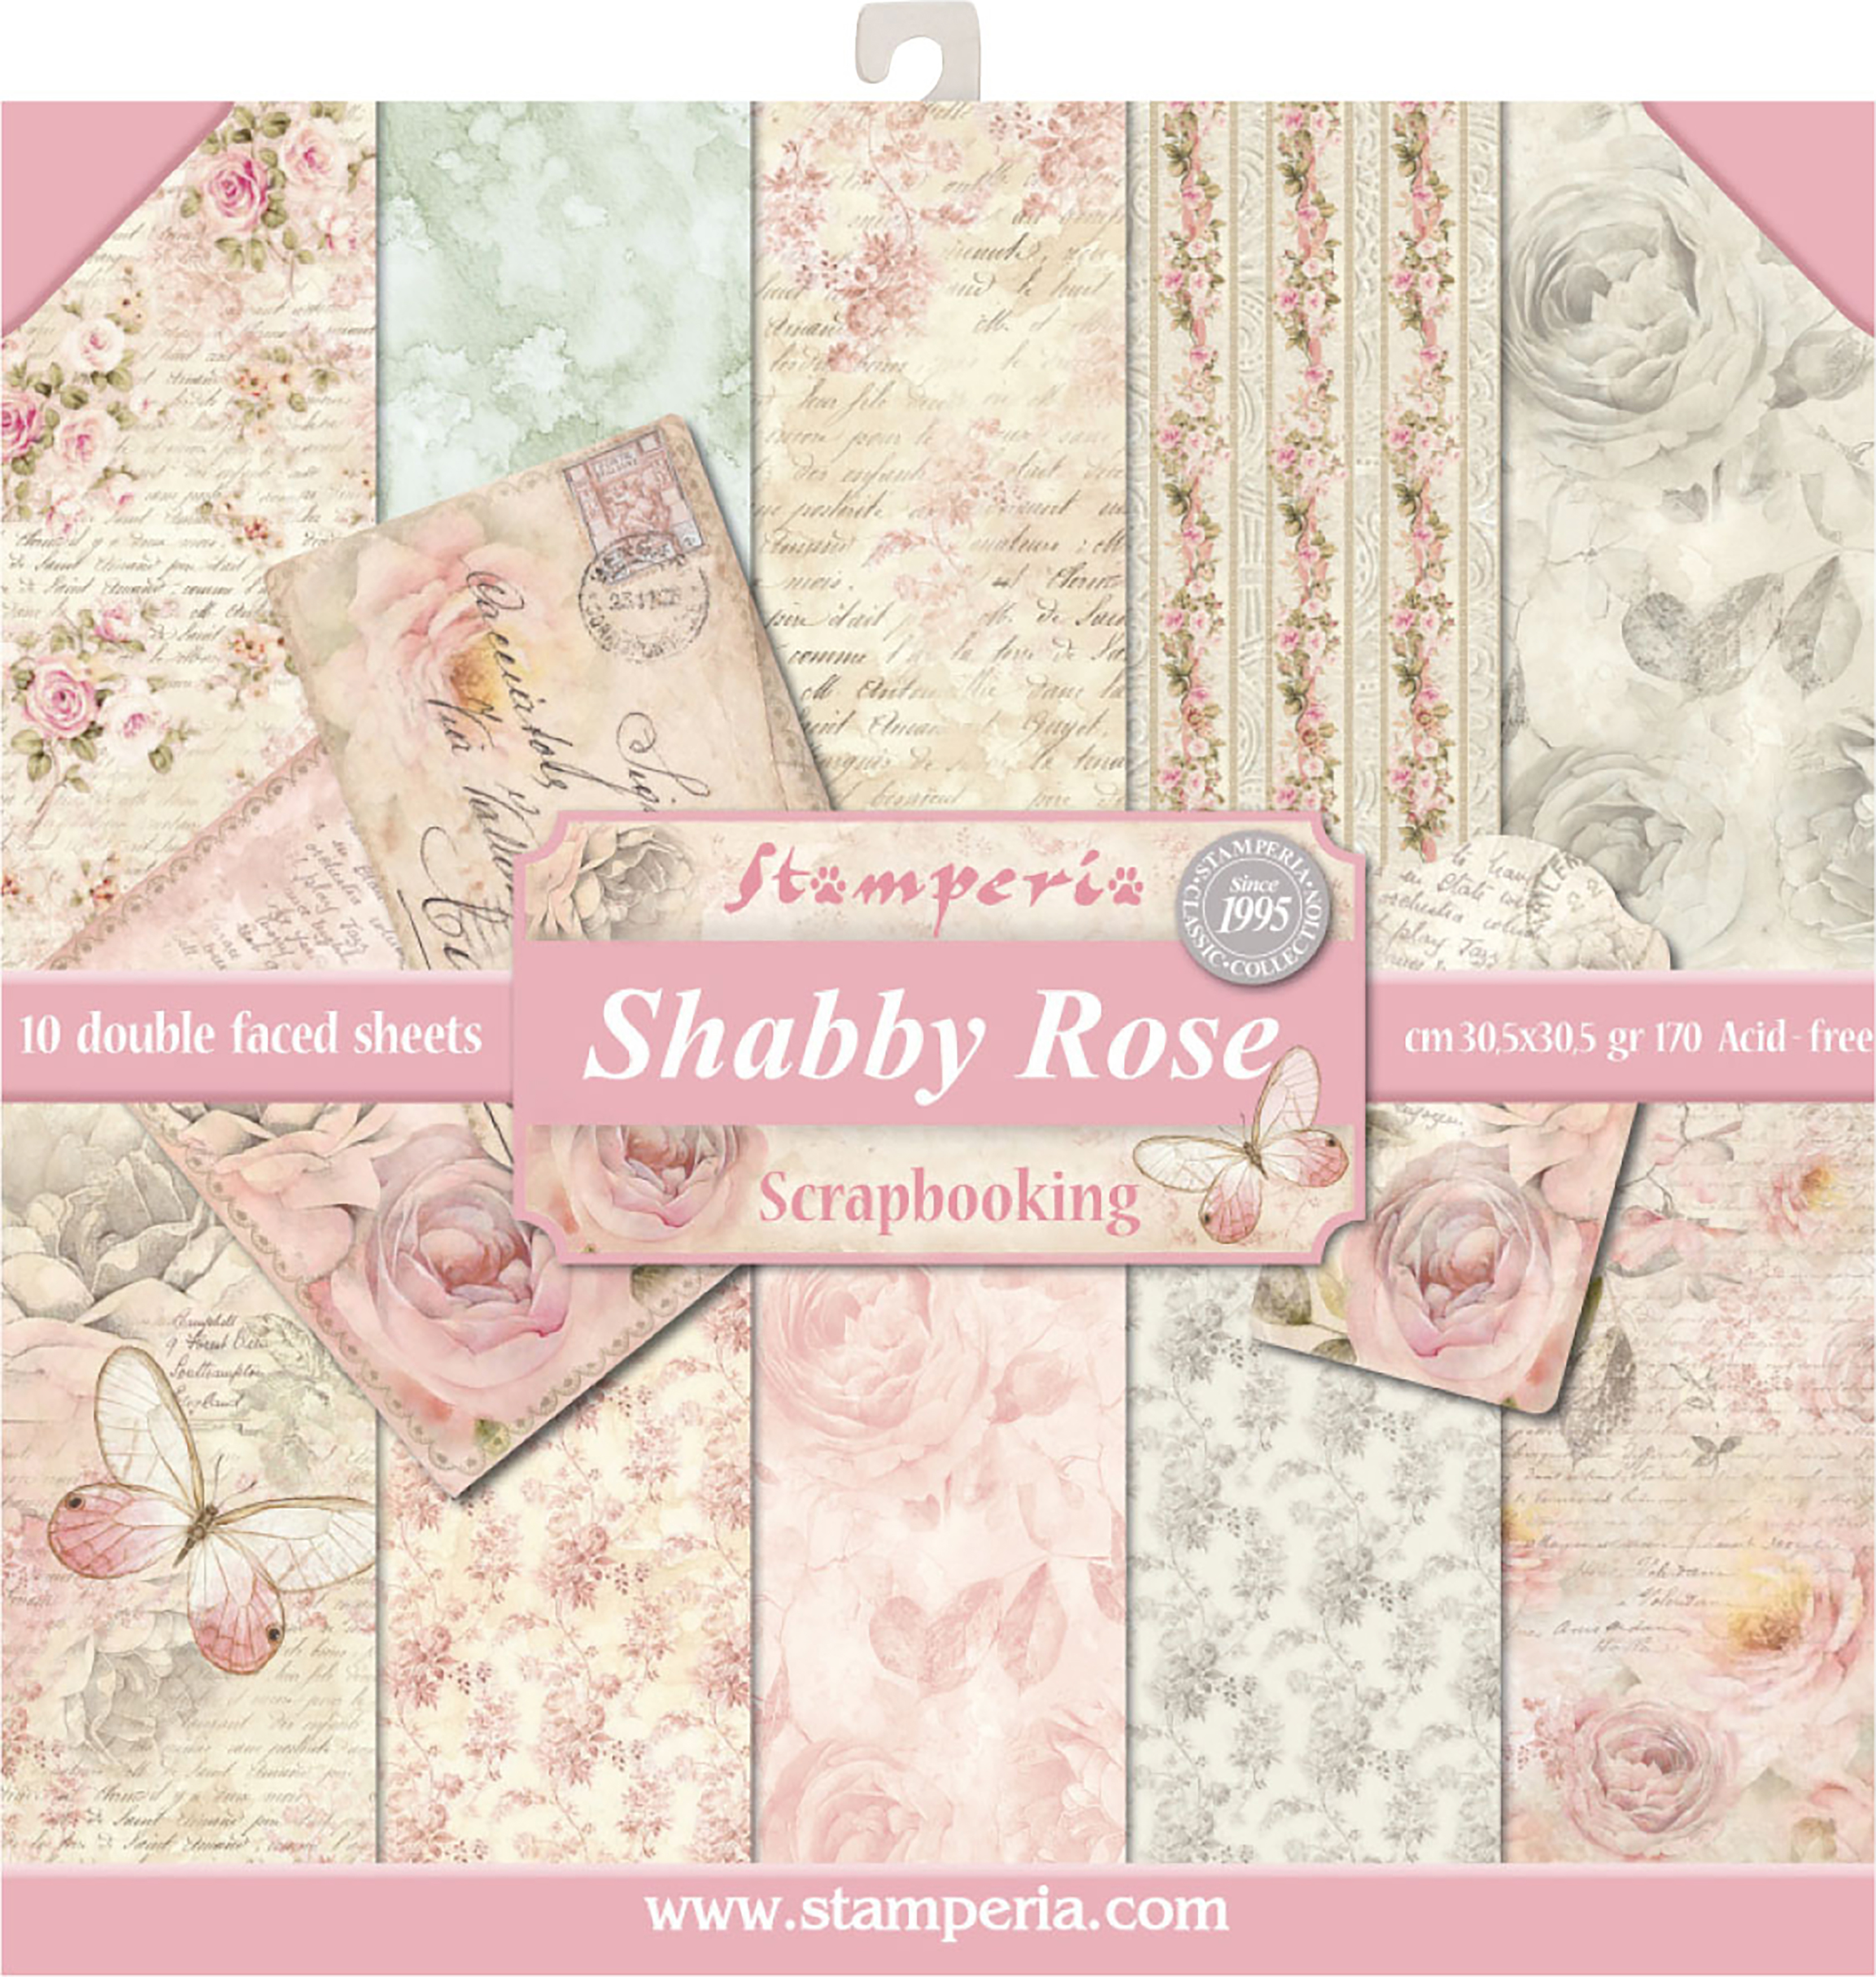 Stamperia Double-Sided Paper Pad 12X12 10/Pkg-Shabby Rose, 10 Designs/1 Each